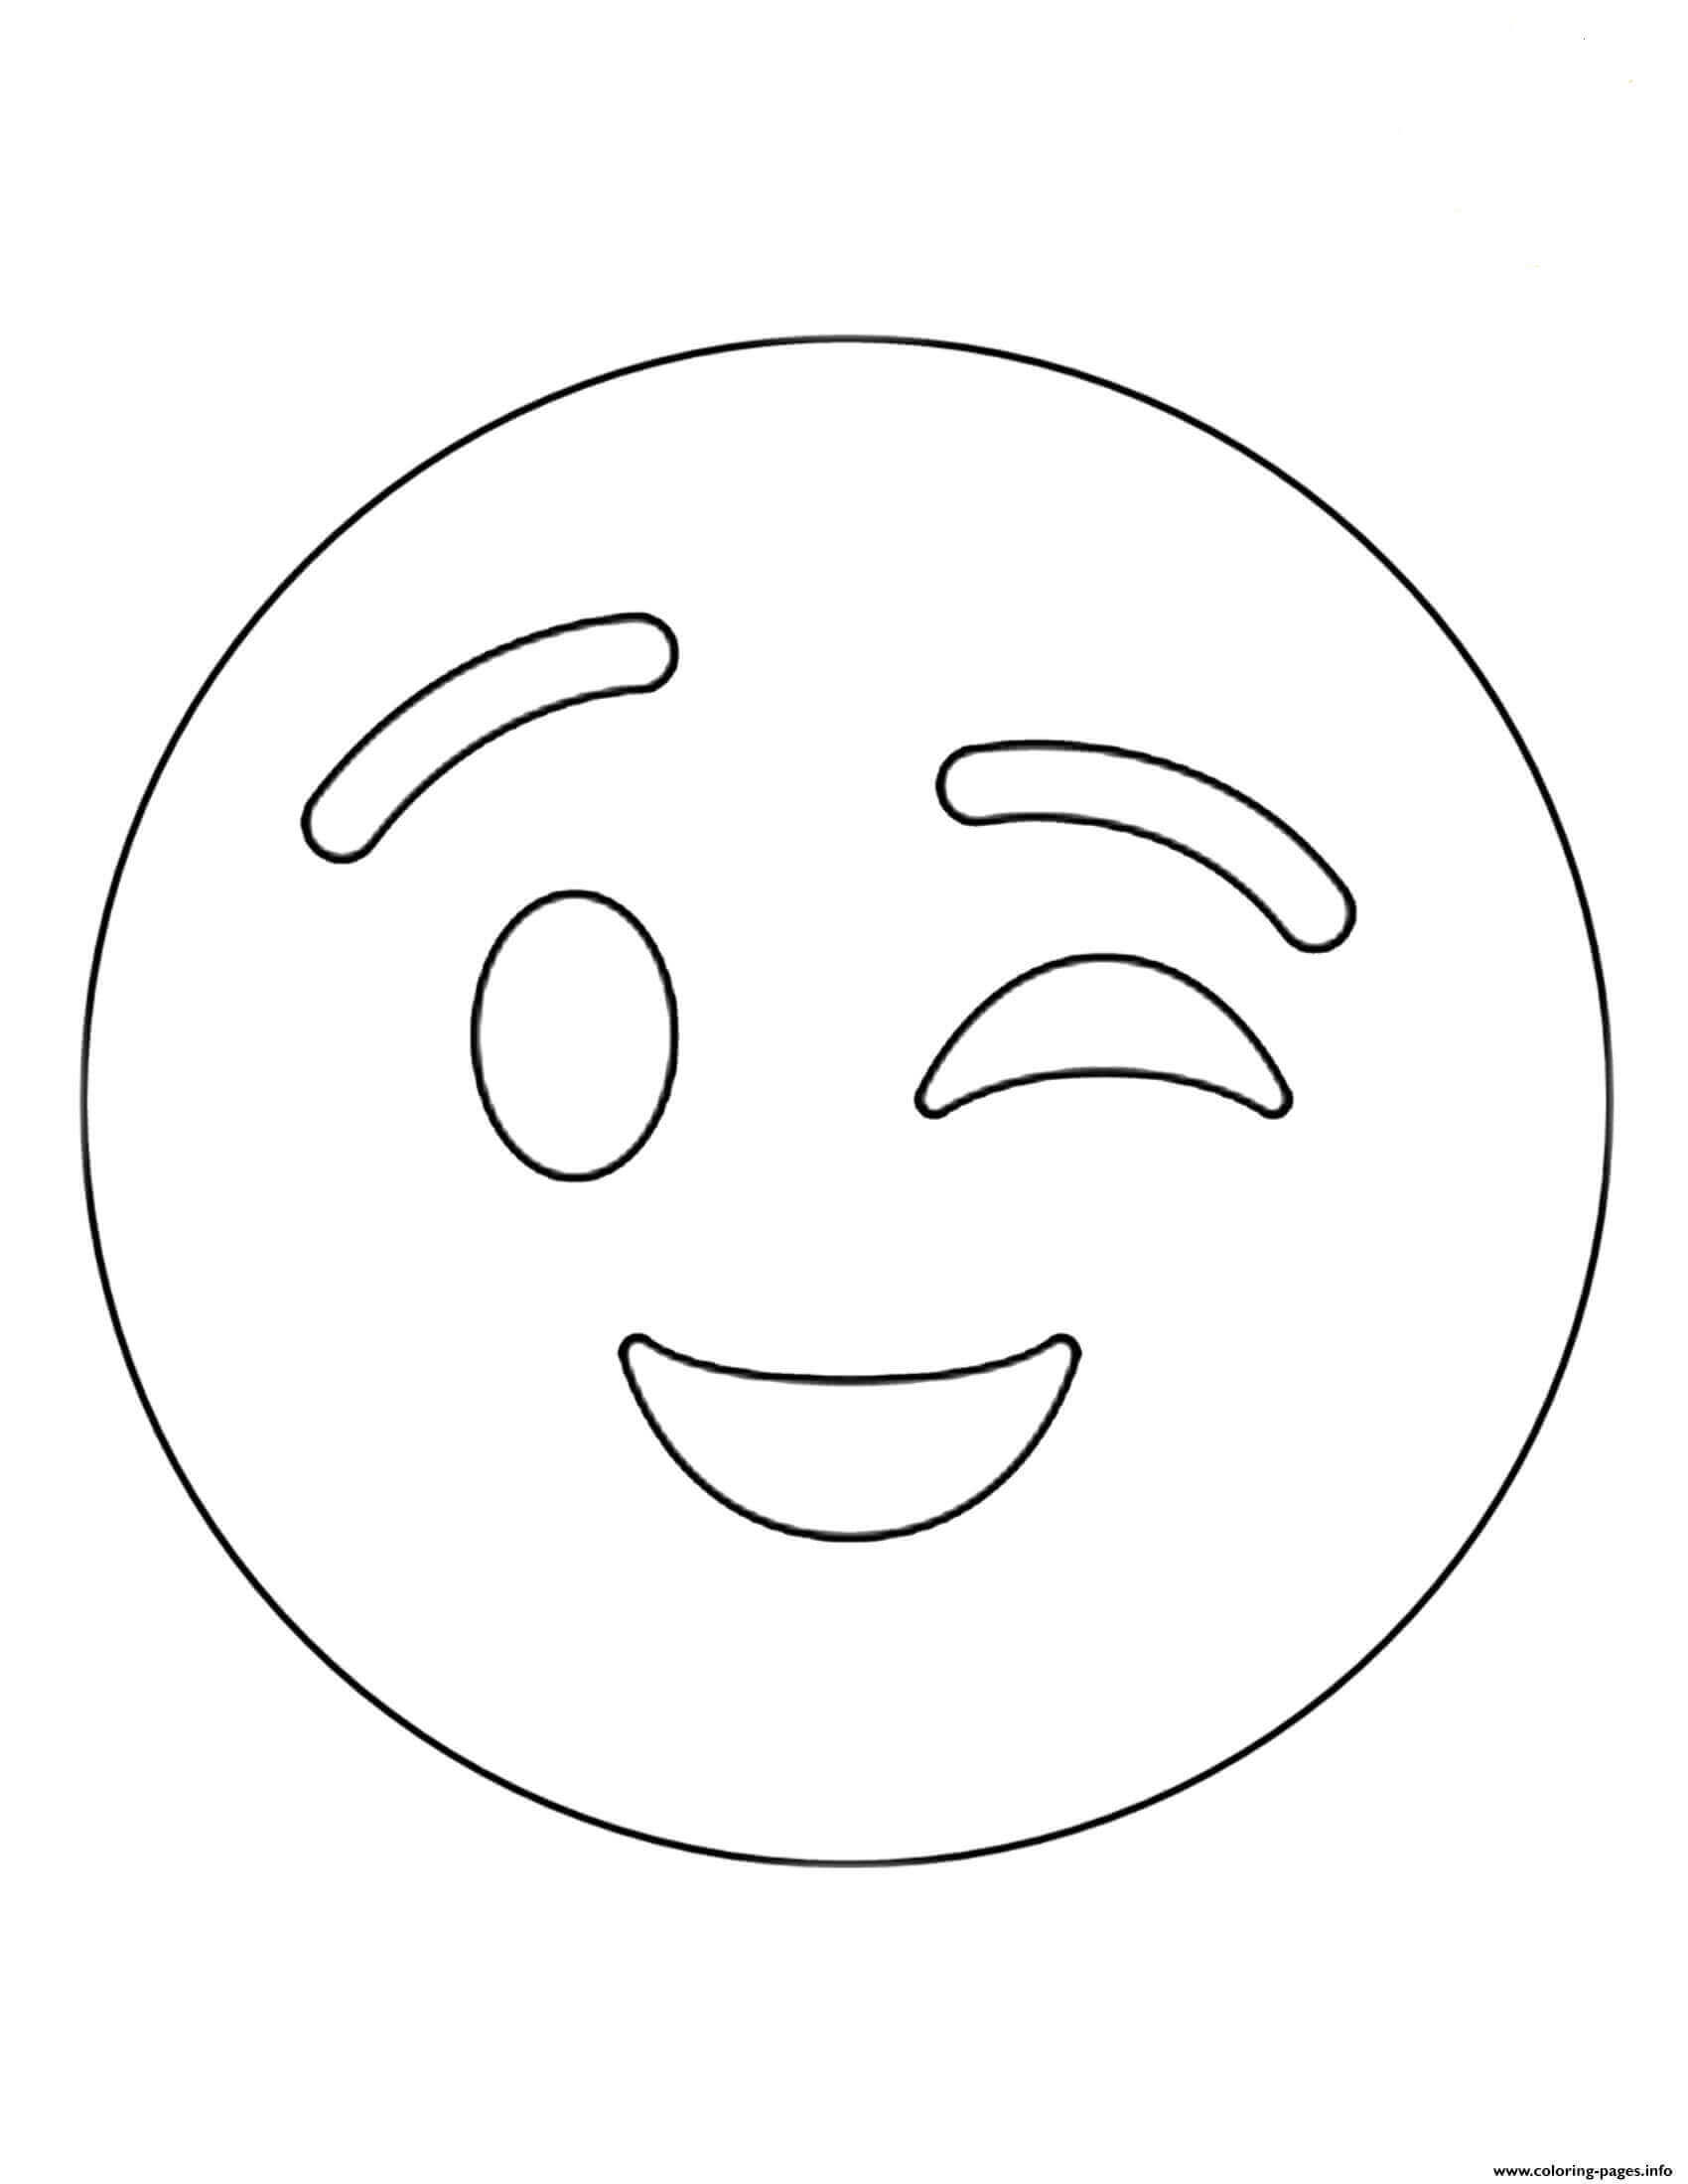 Starbucks Emoji Coloring Pages Coloring Pages